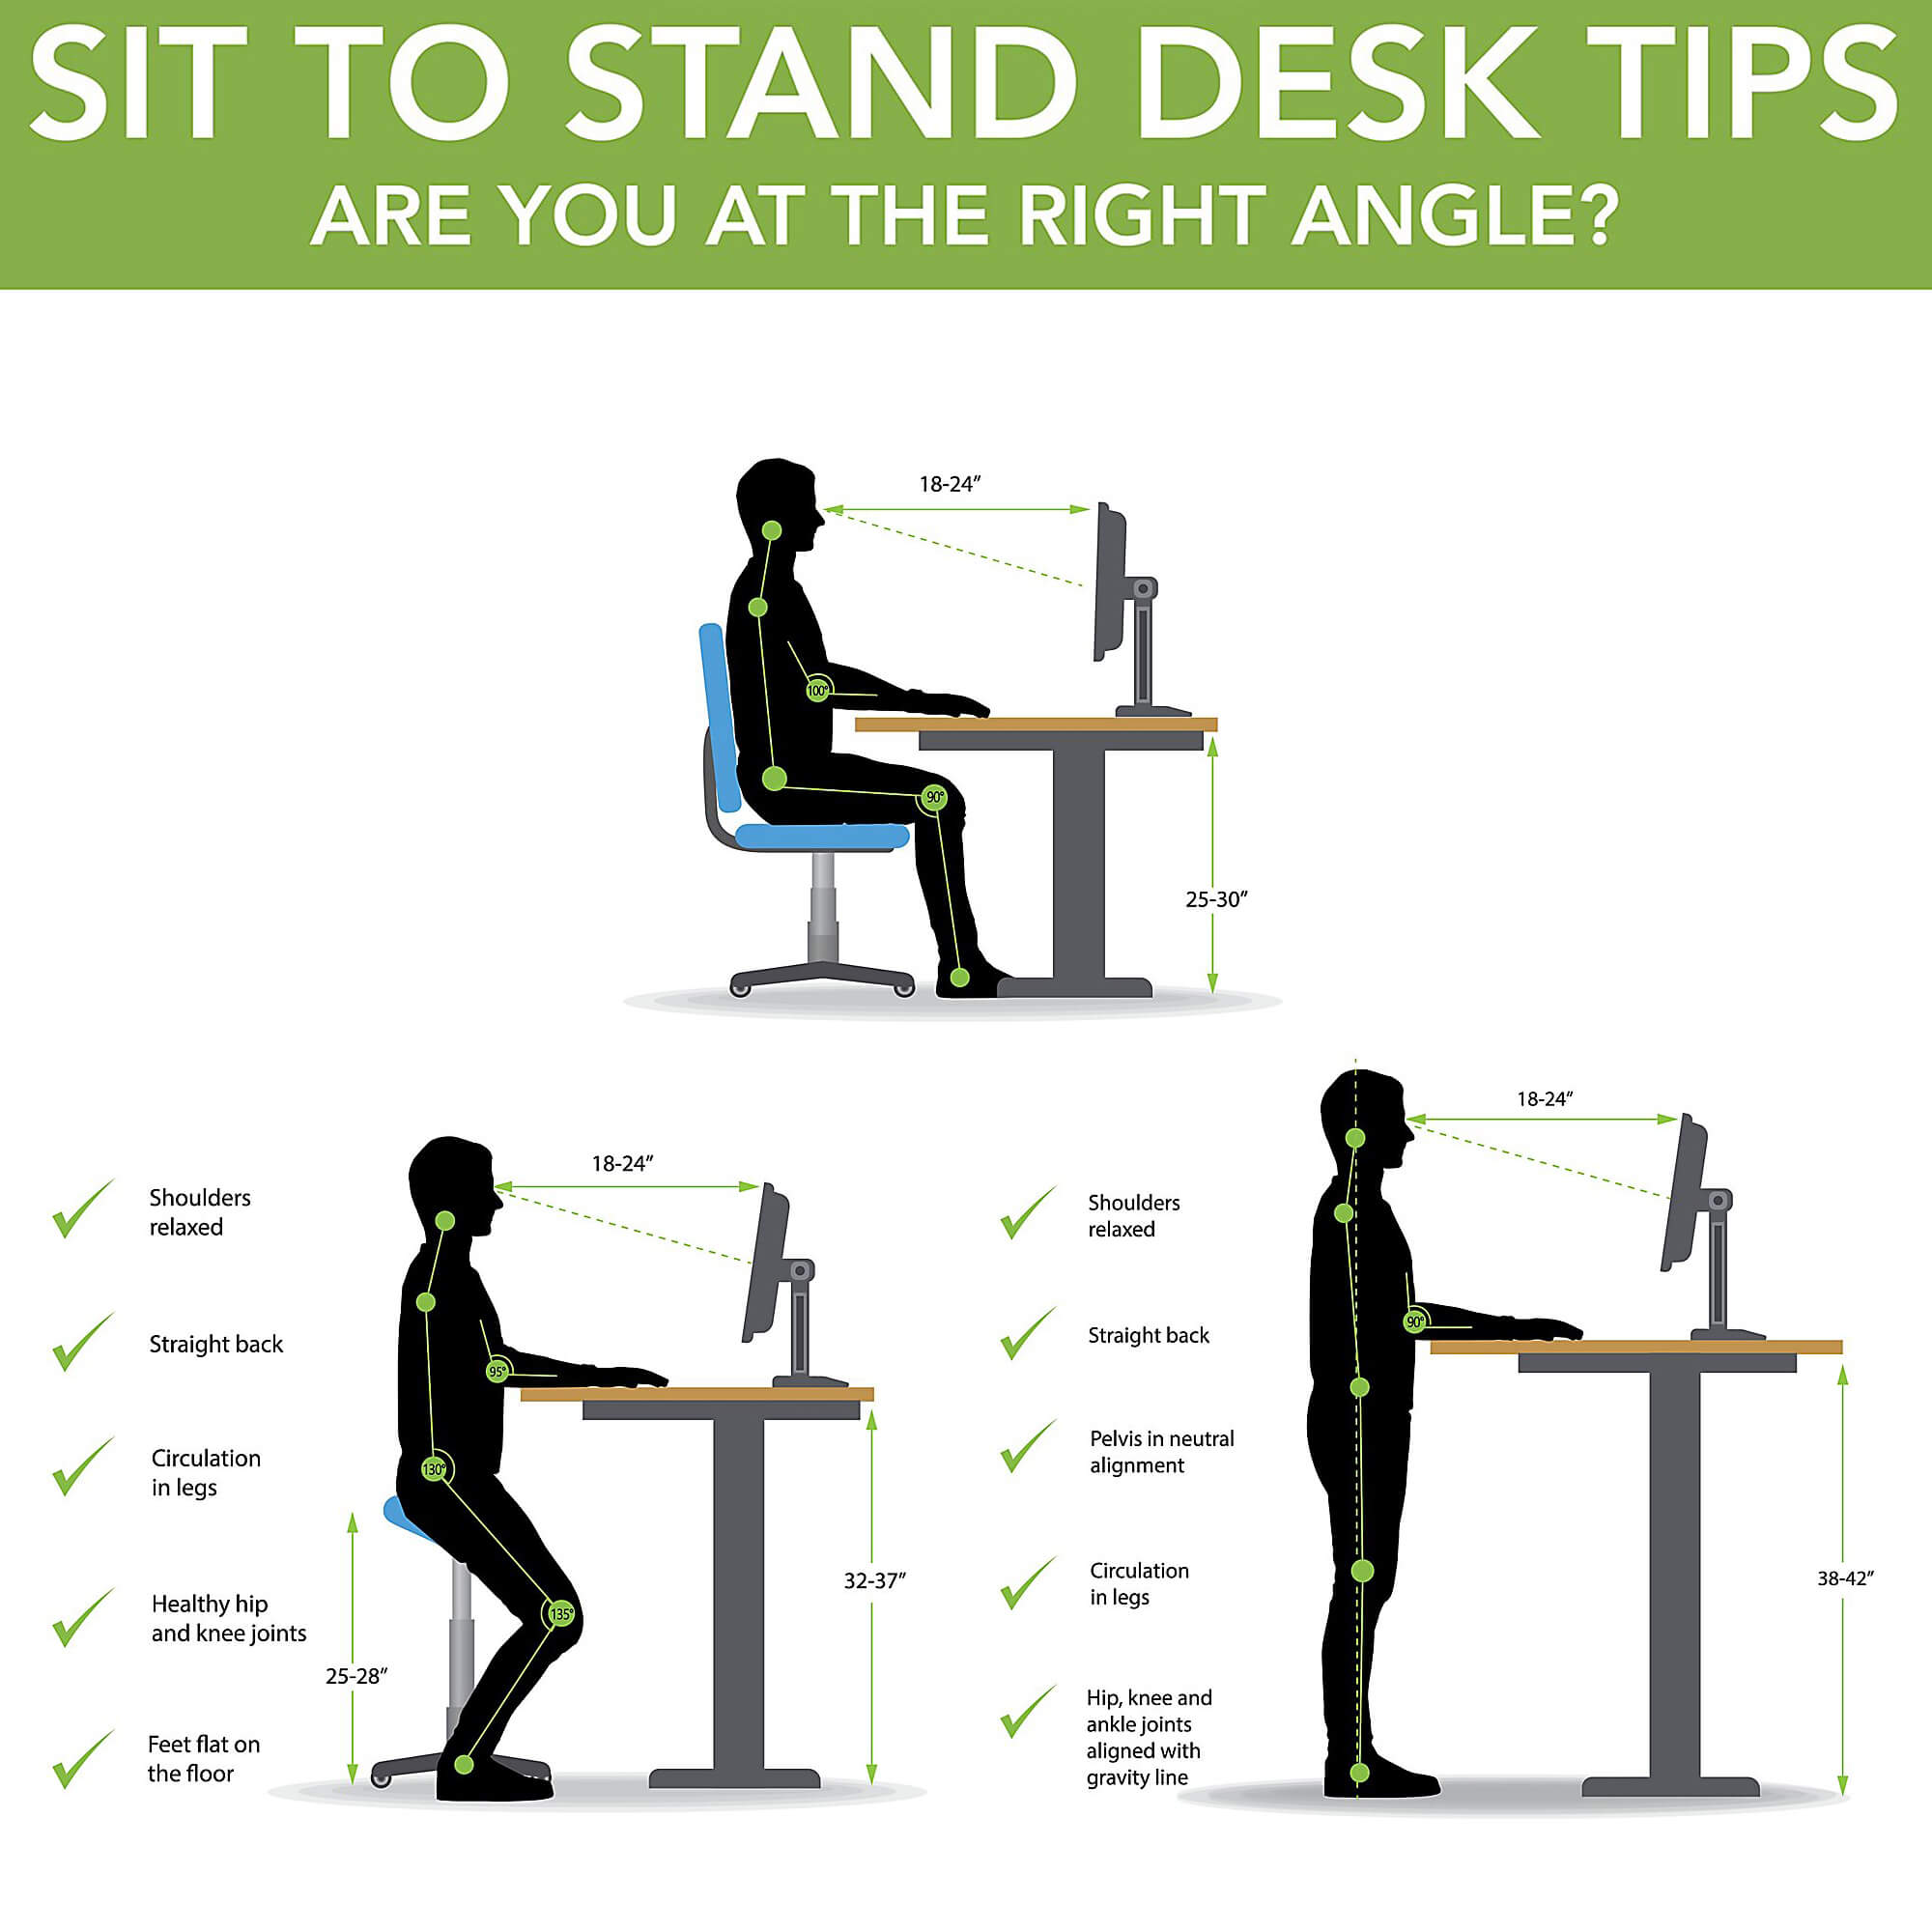 Sit stand desk tips 1